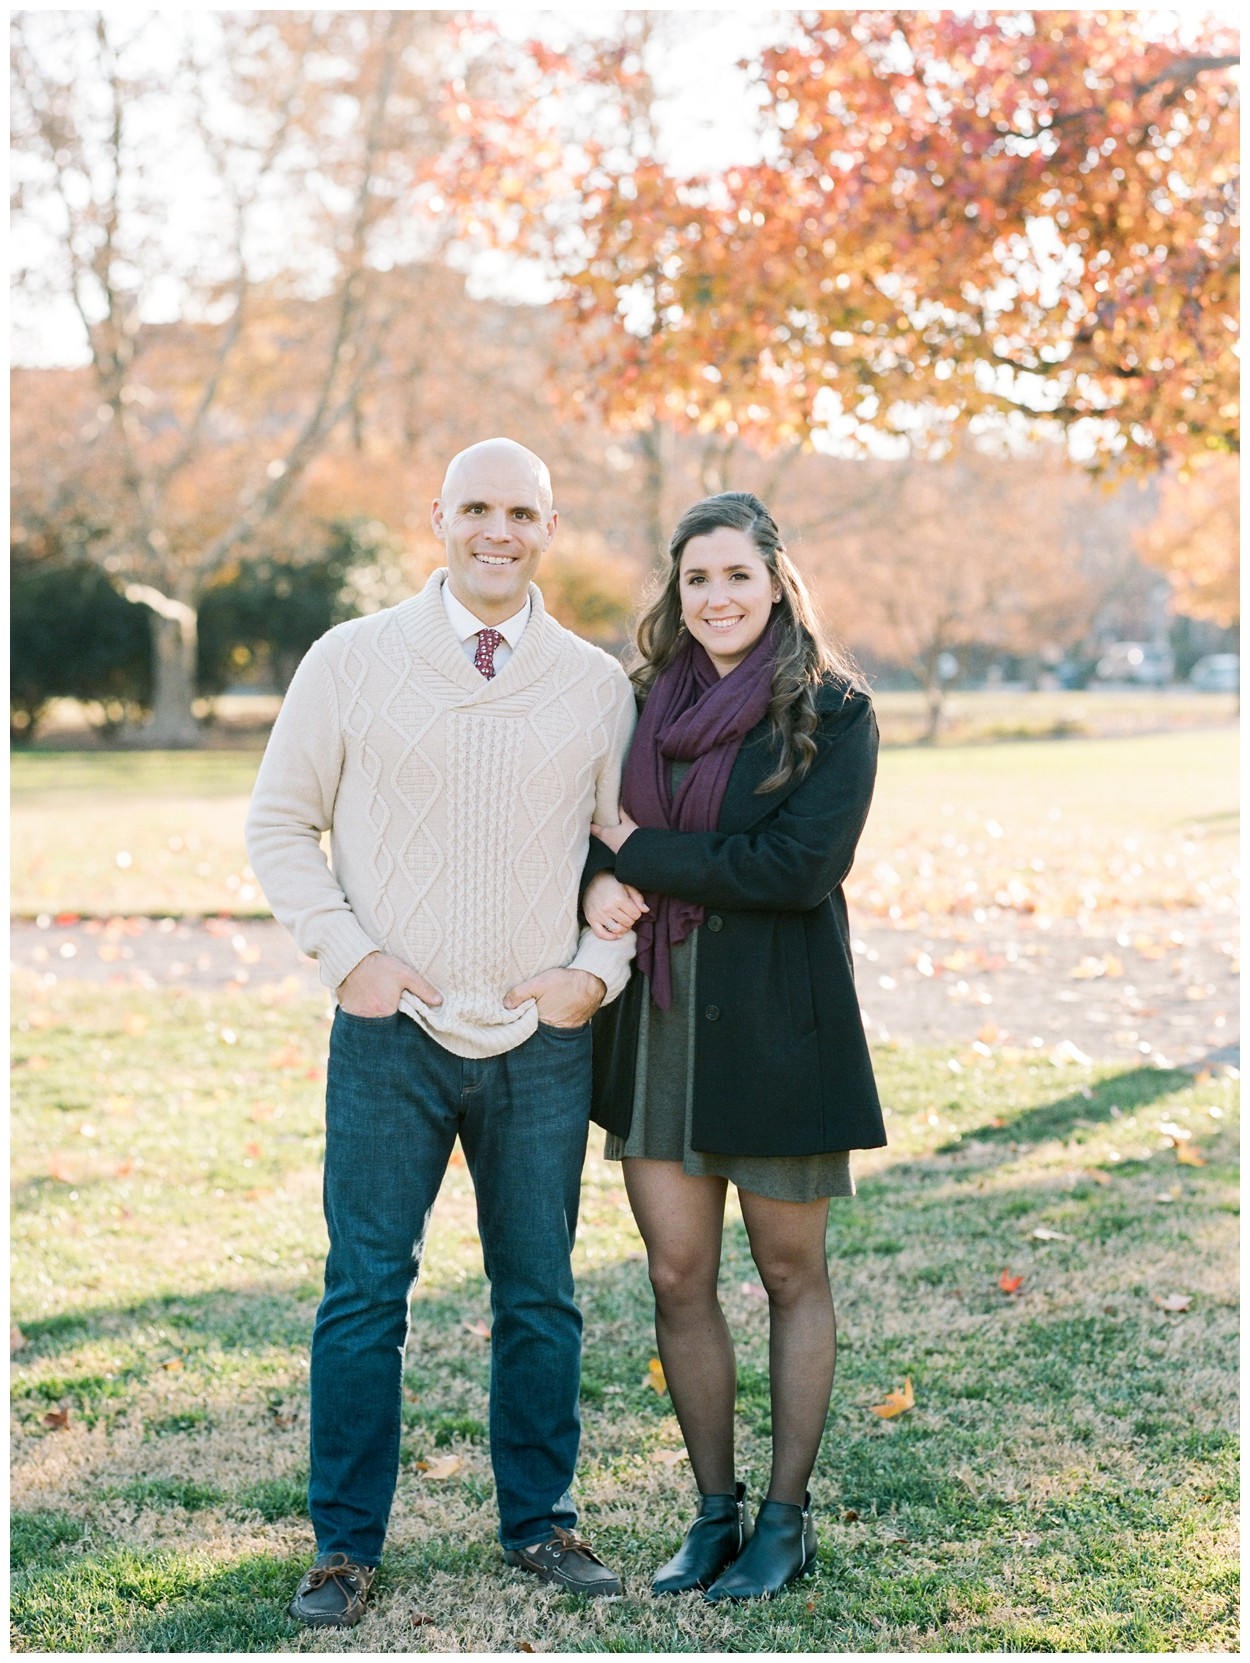 Fall / Winter engagement session in Old Town Alexandria Virginia by fine art wedding photographer Lissa Ryan Photography